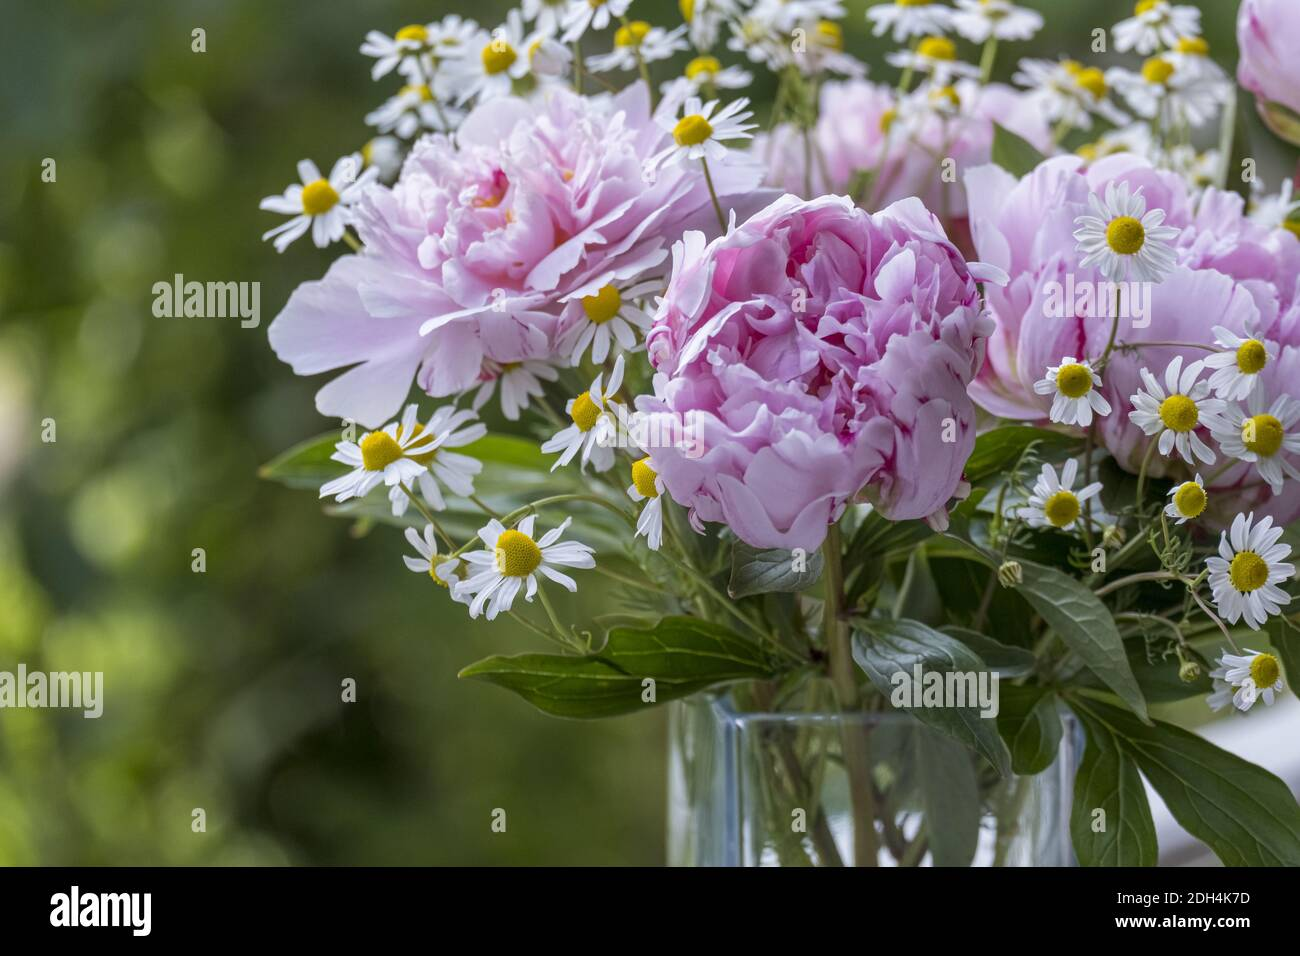 Bouquet with peonies (Paeonia) and chamomile Stock Photo